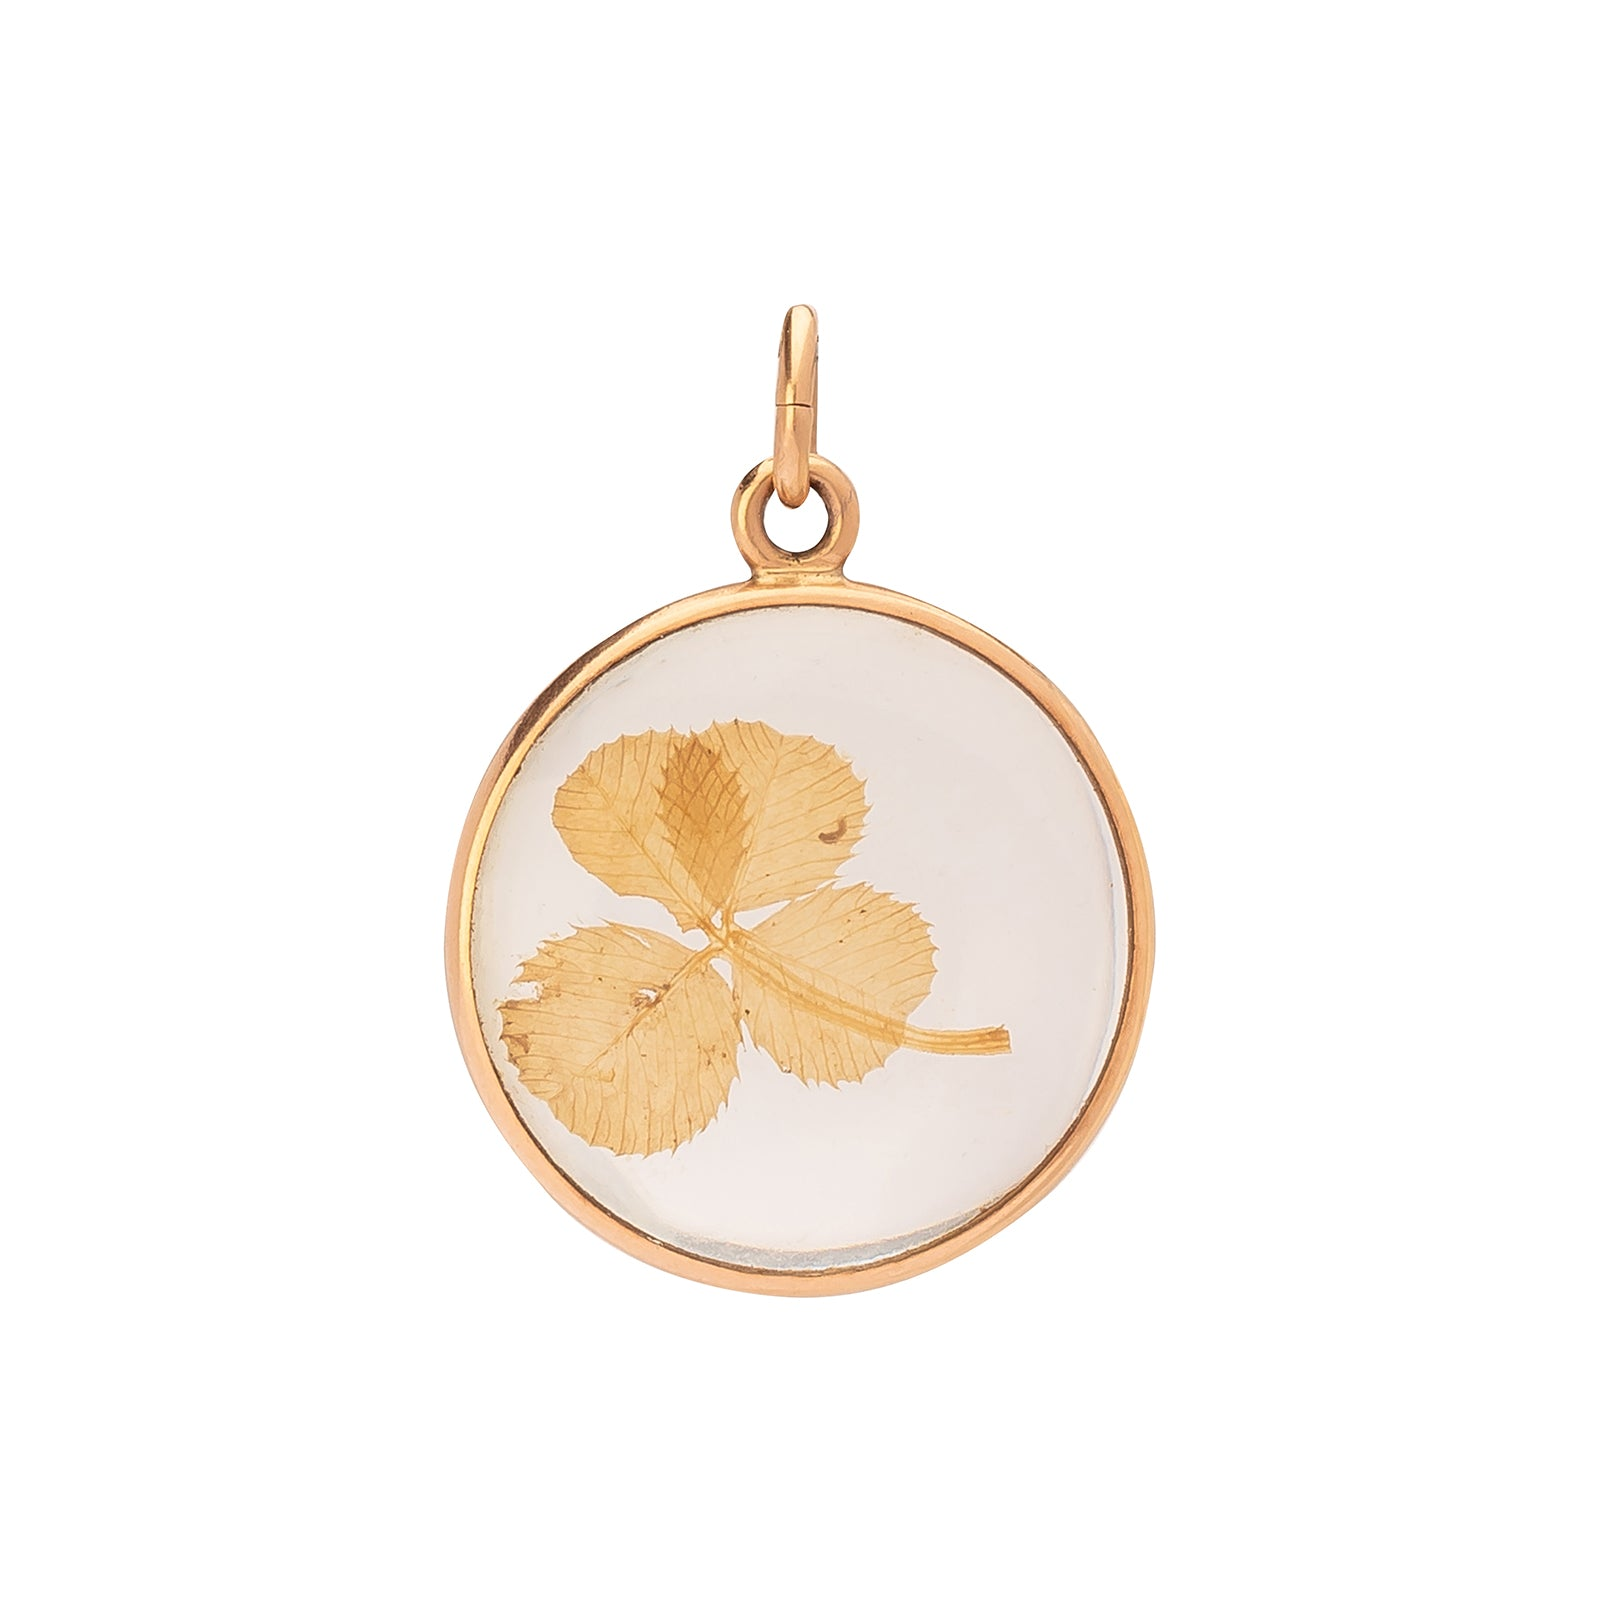 Antique & Vintage Jewelry Four Leaf Clover Bezel Pendant - Charms & Pendants - Broken English Jewelry